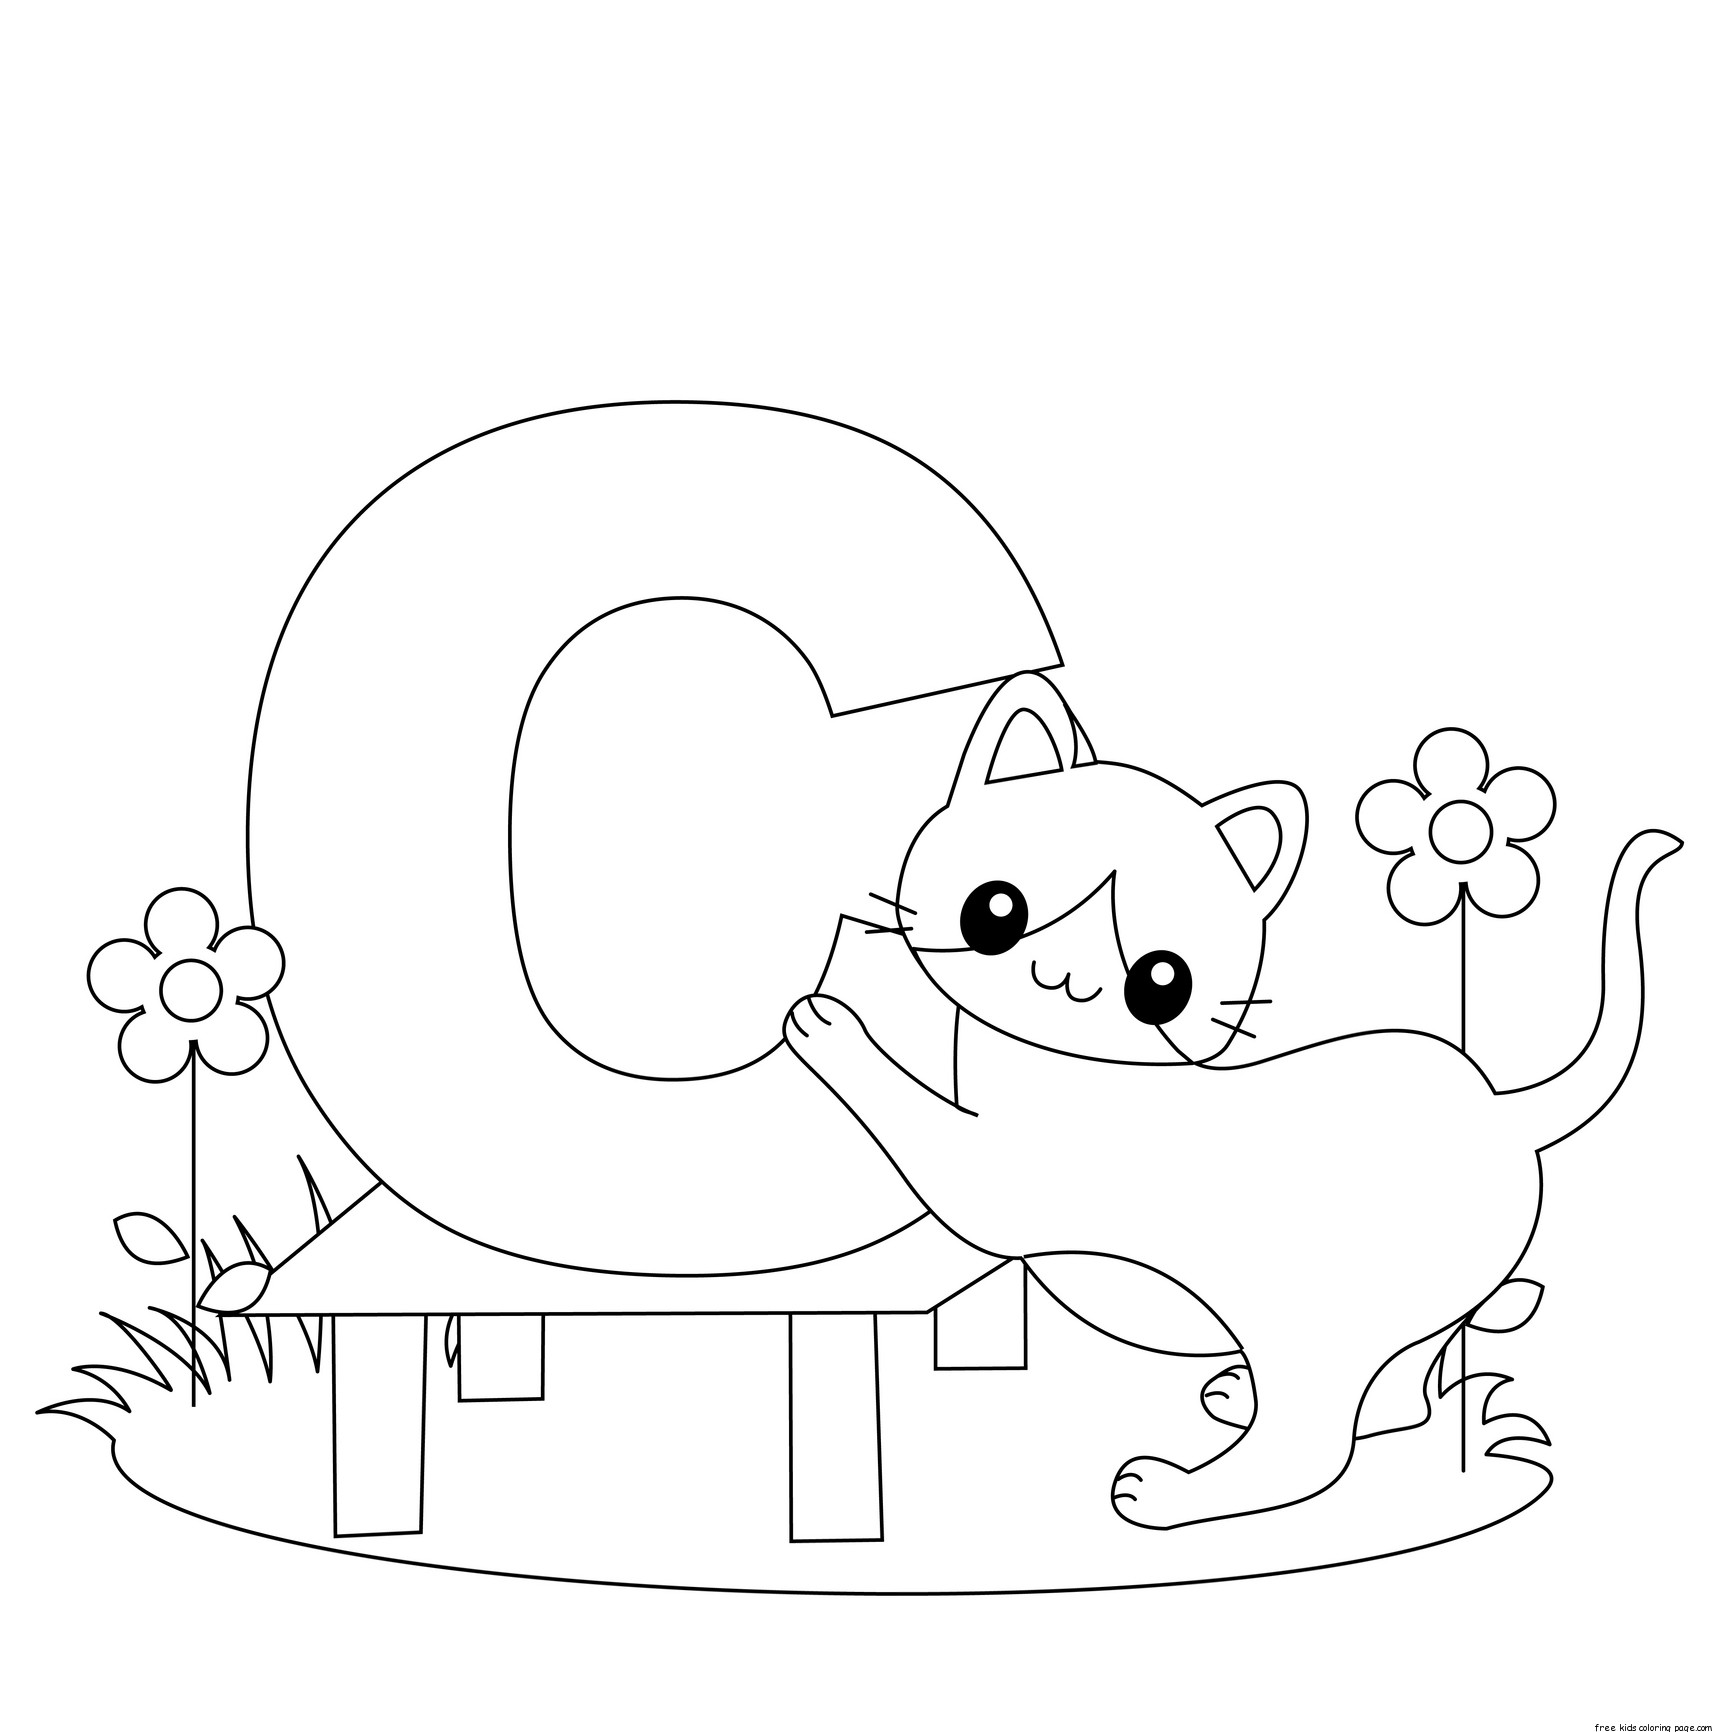 Cat C Worksheet For Preschool